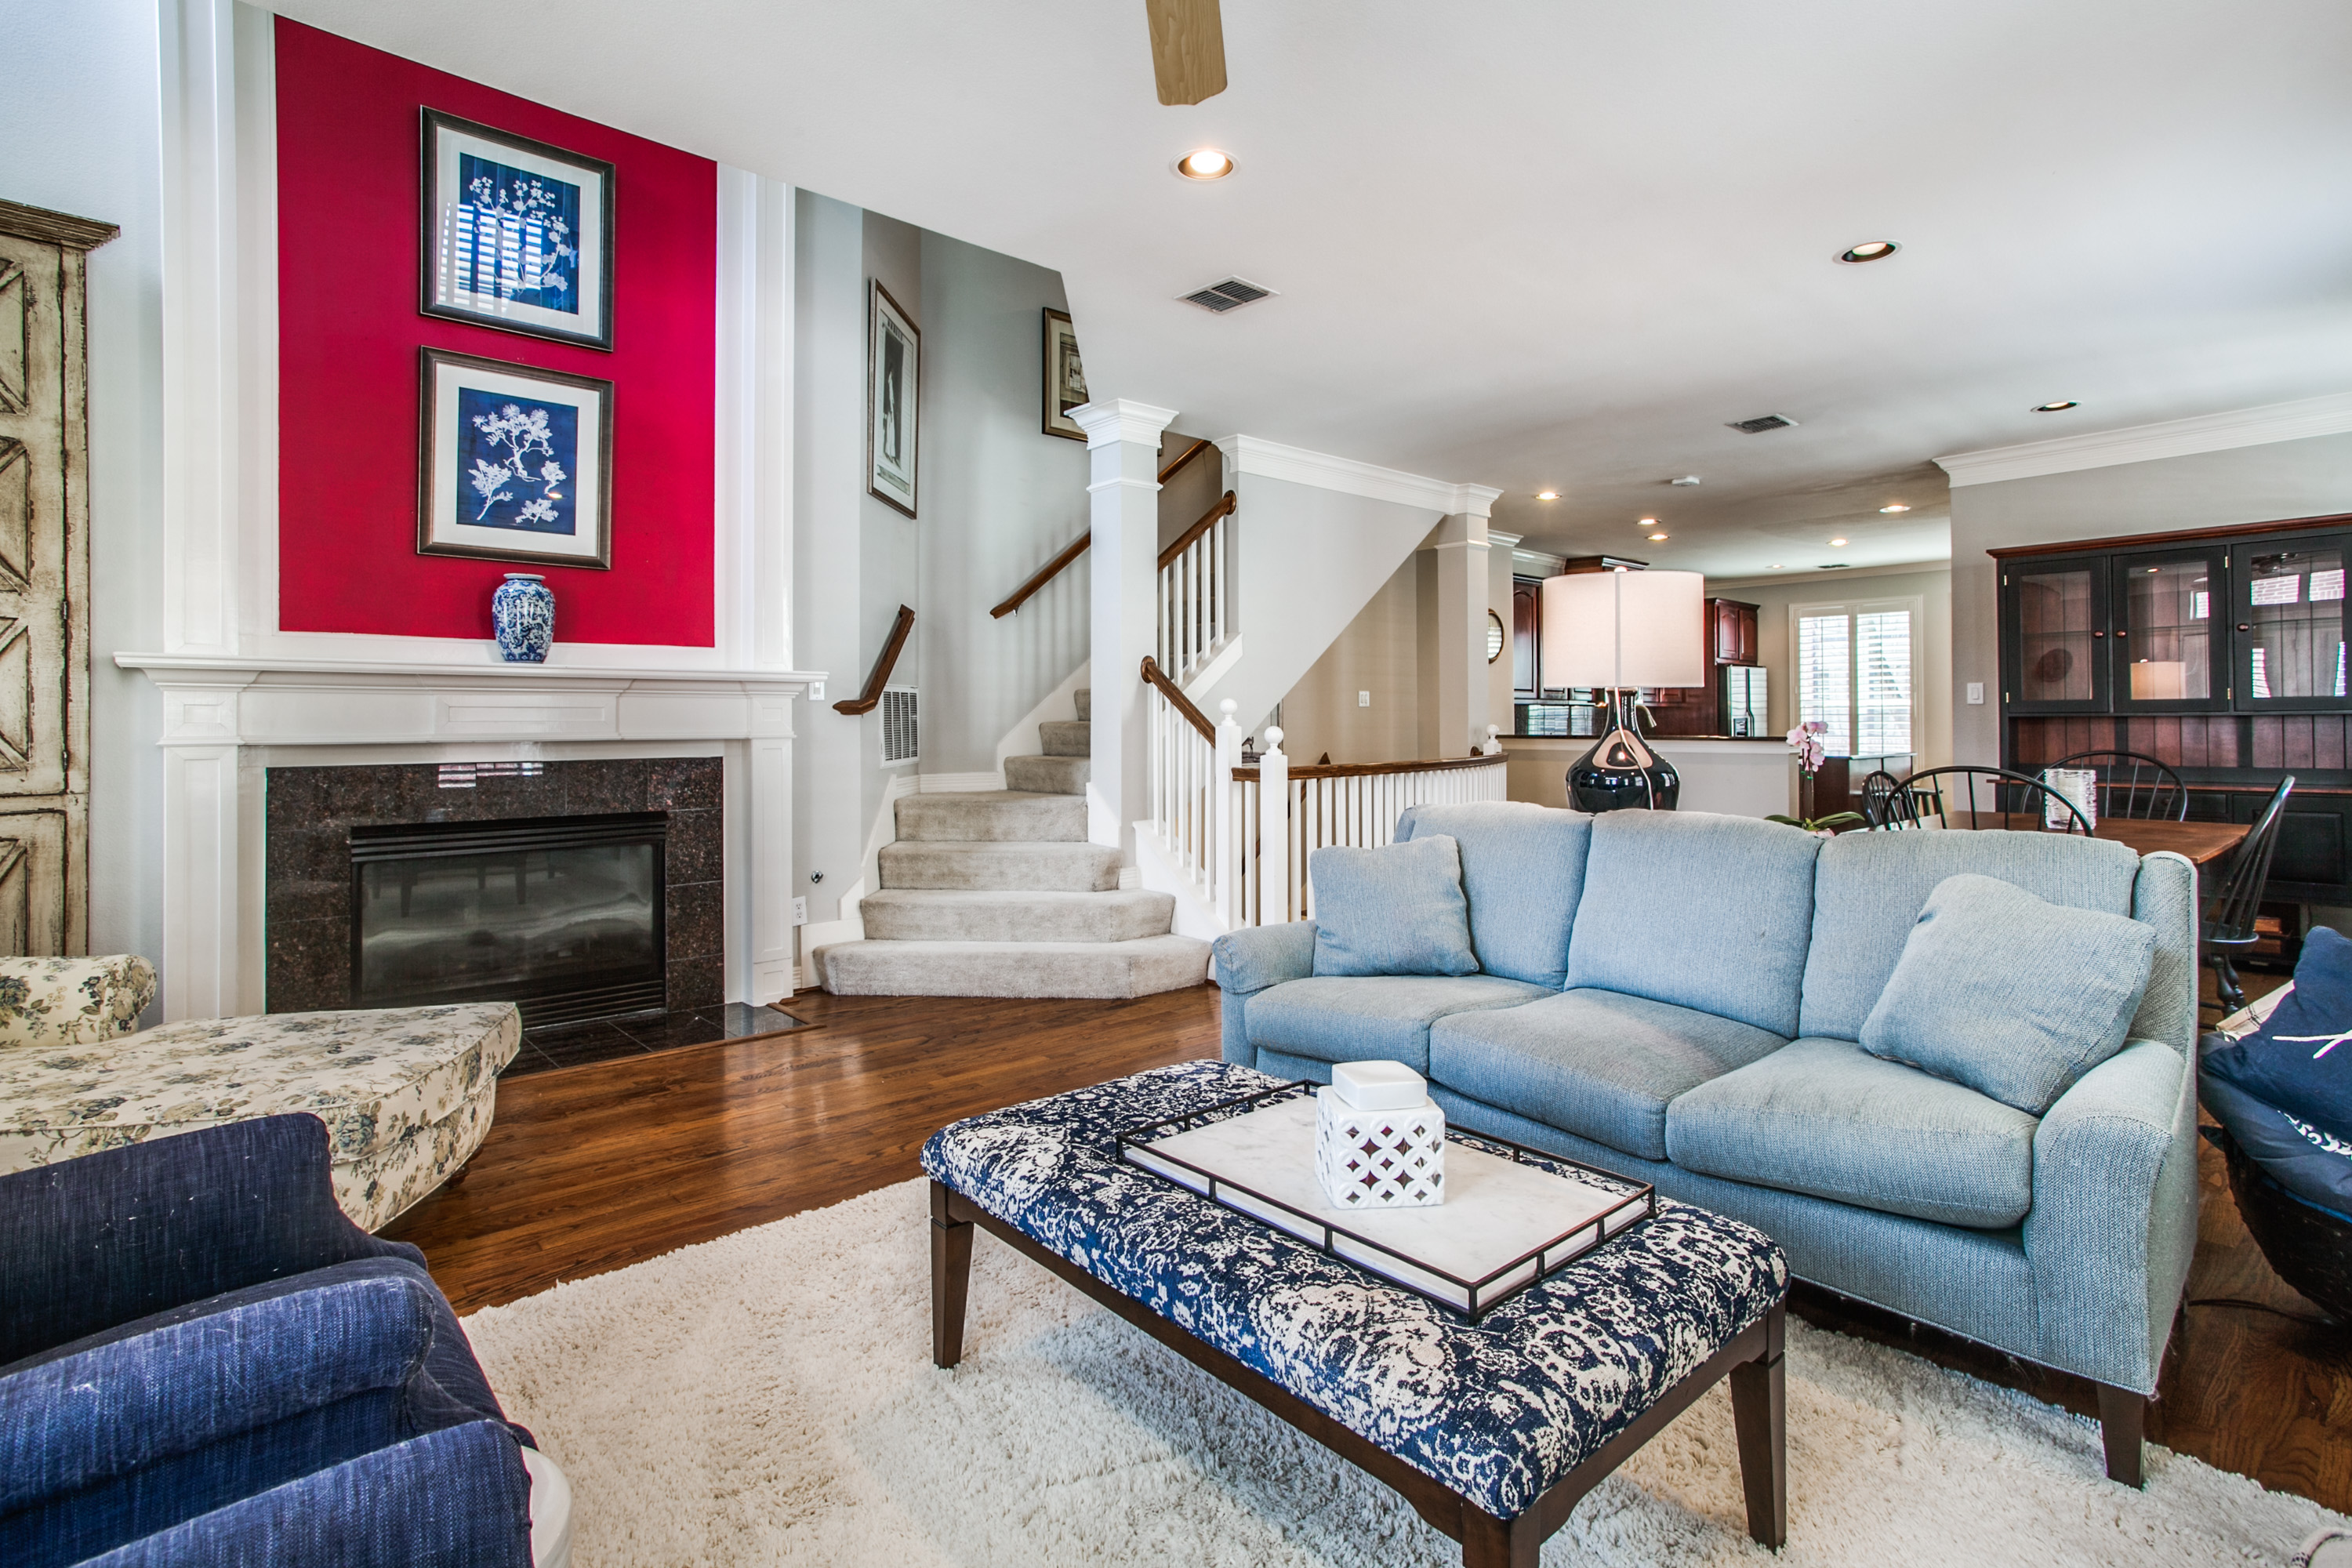 This Luxurious Three Story End Unit Townhouse Is A Sought After Oasis In Upscale State Thomas Overflowing With Fabulous Features To Fall Love